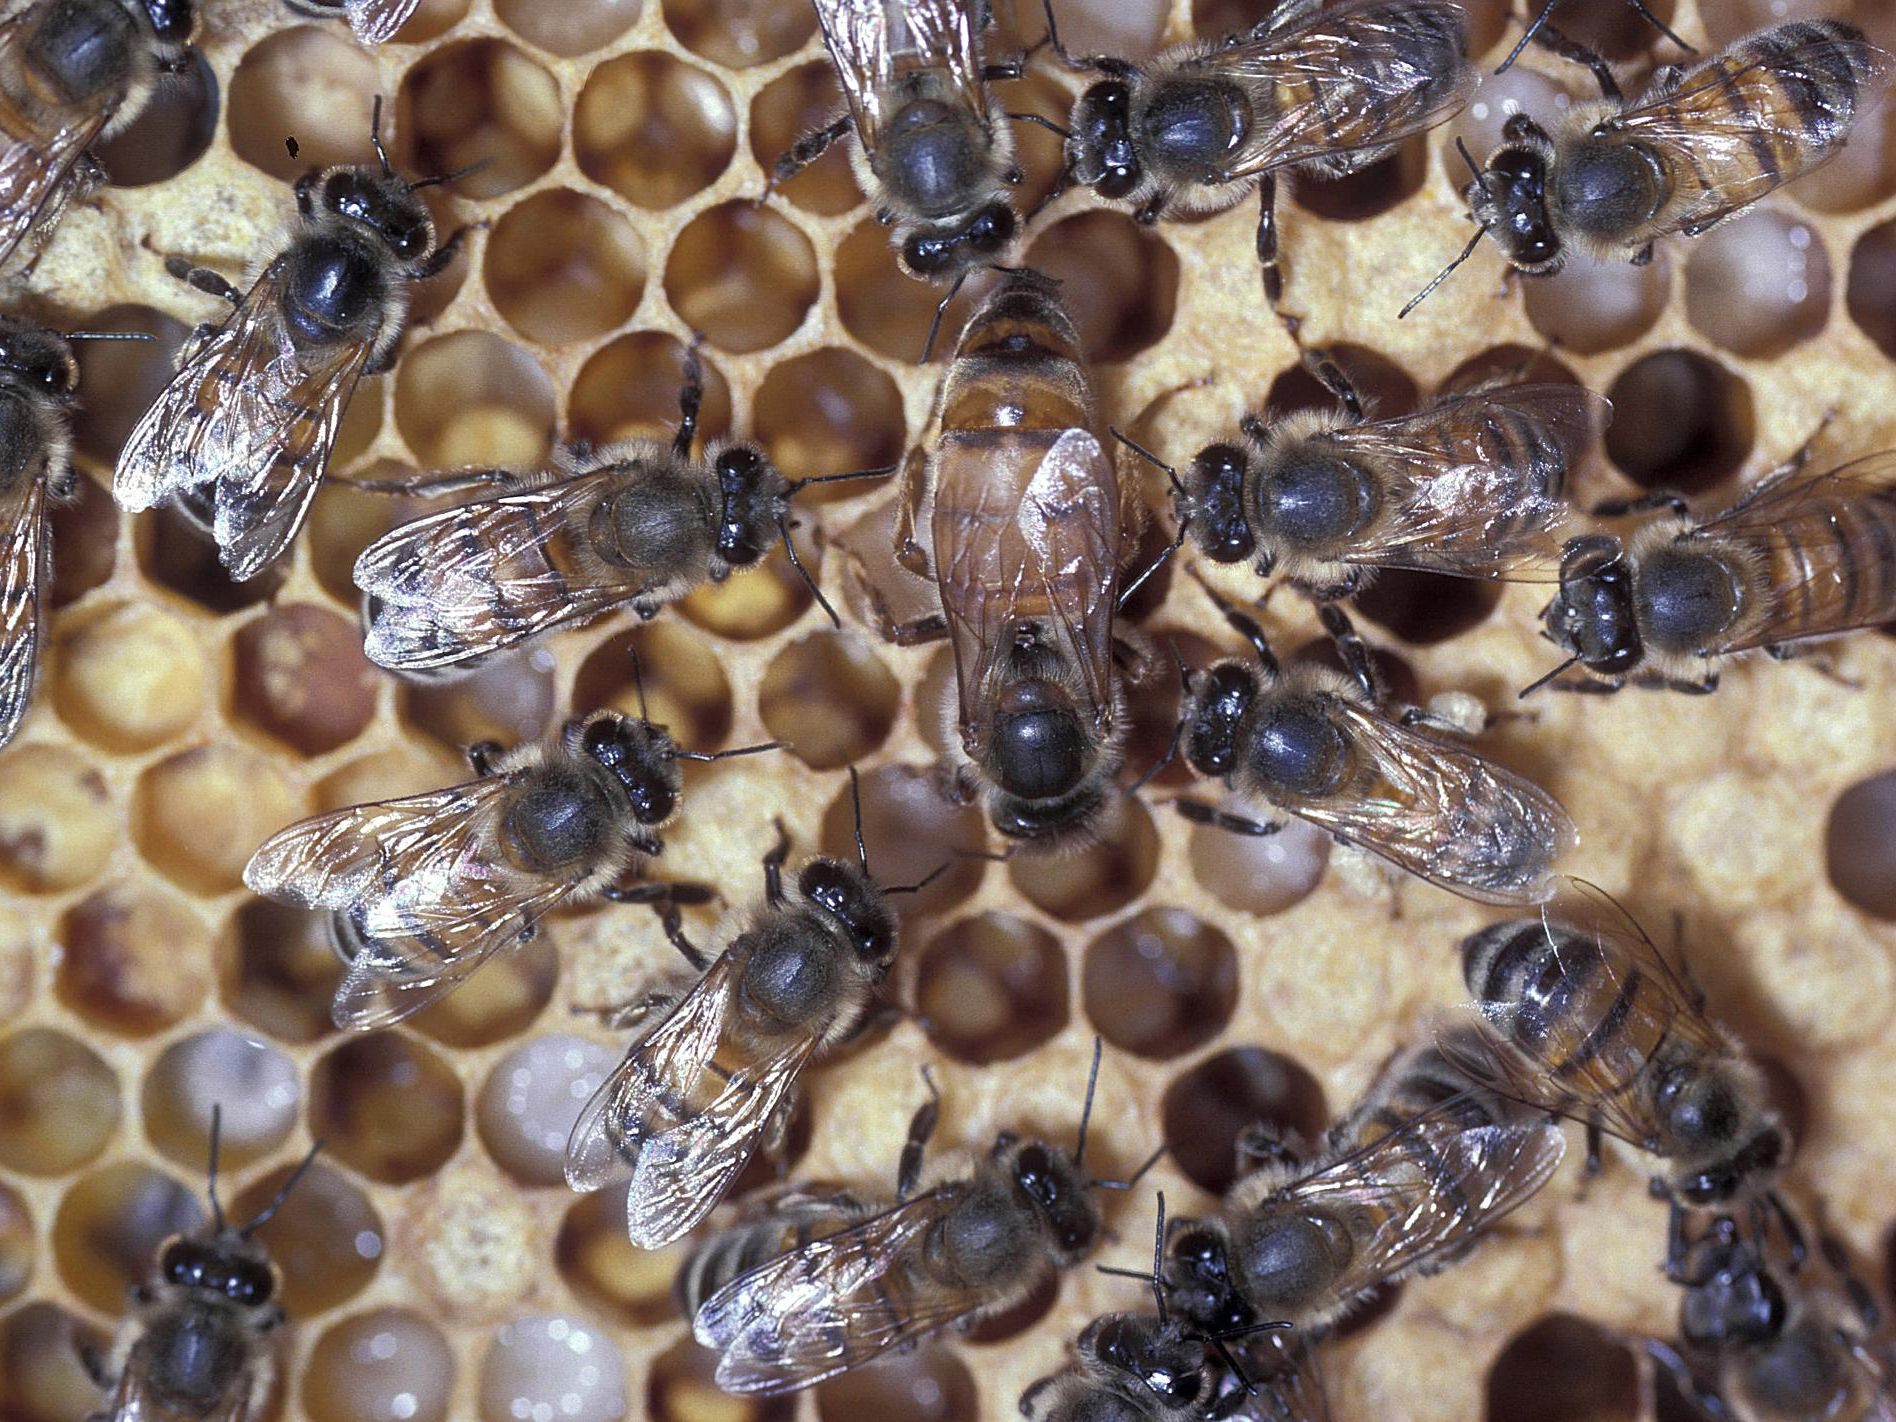 The Roles of Queens, Drones and Worker Honey Bees